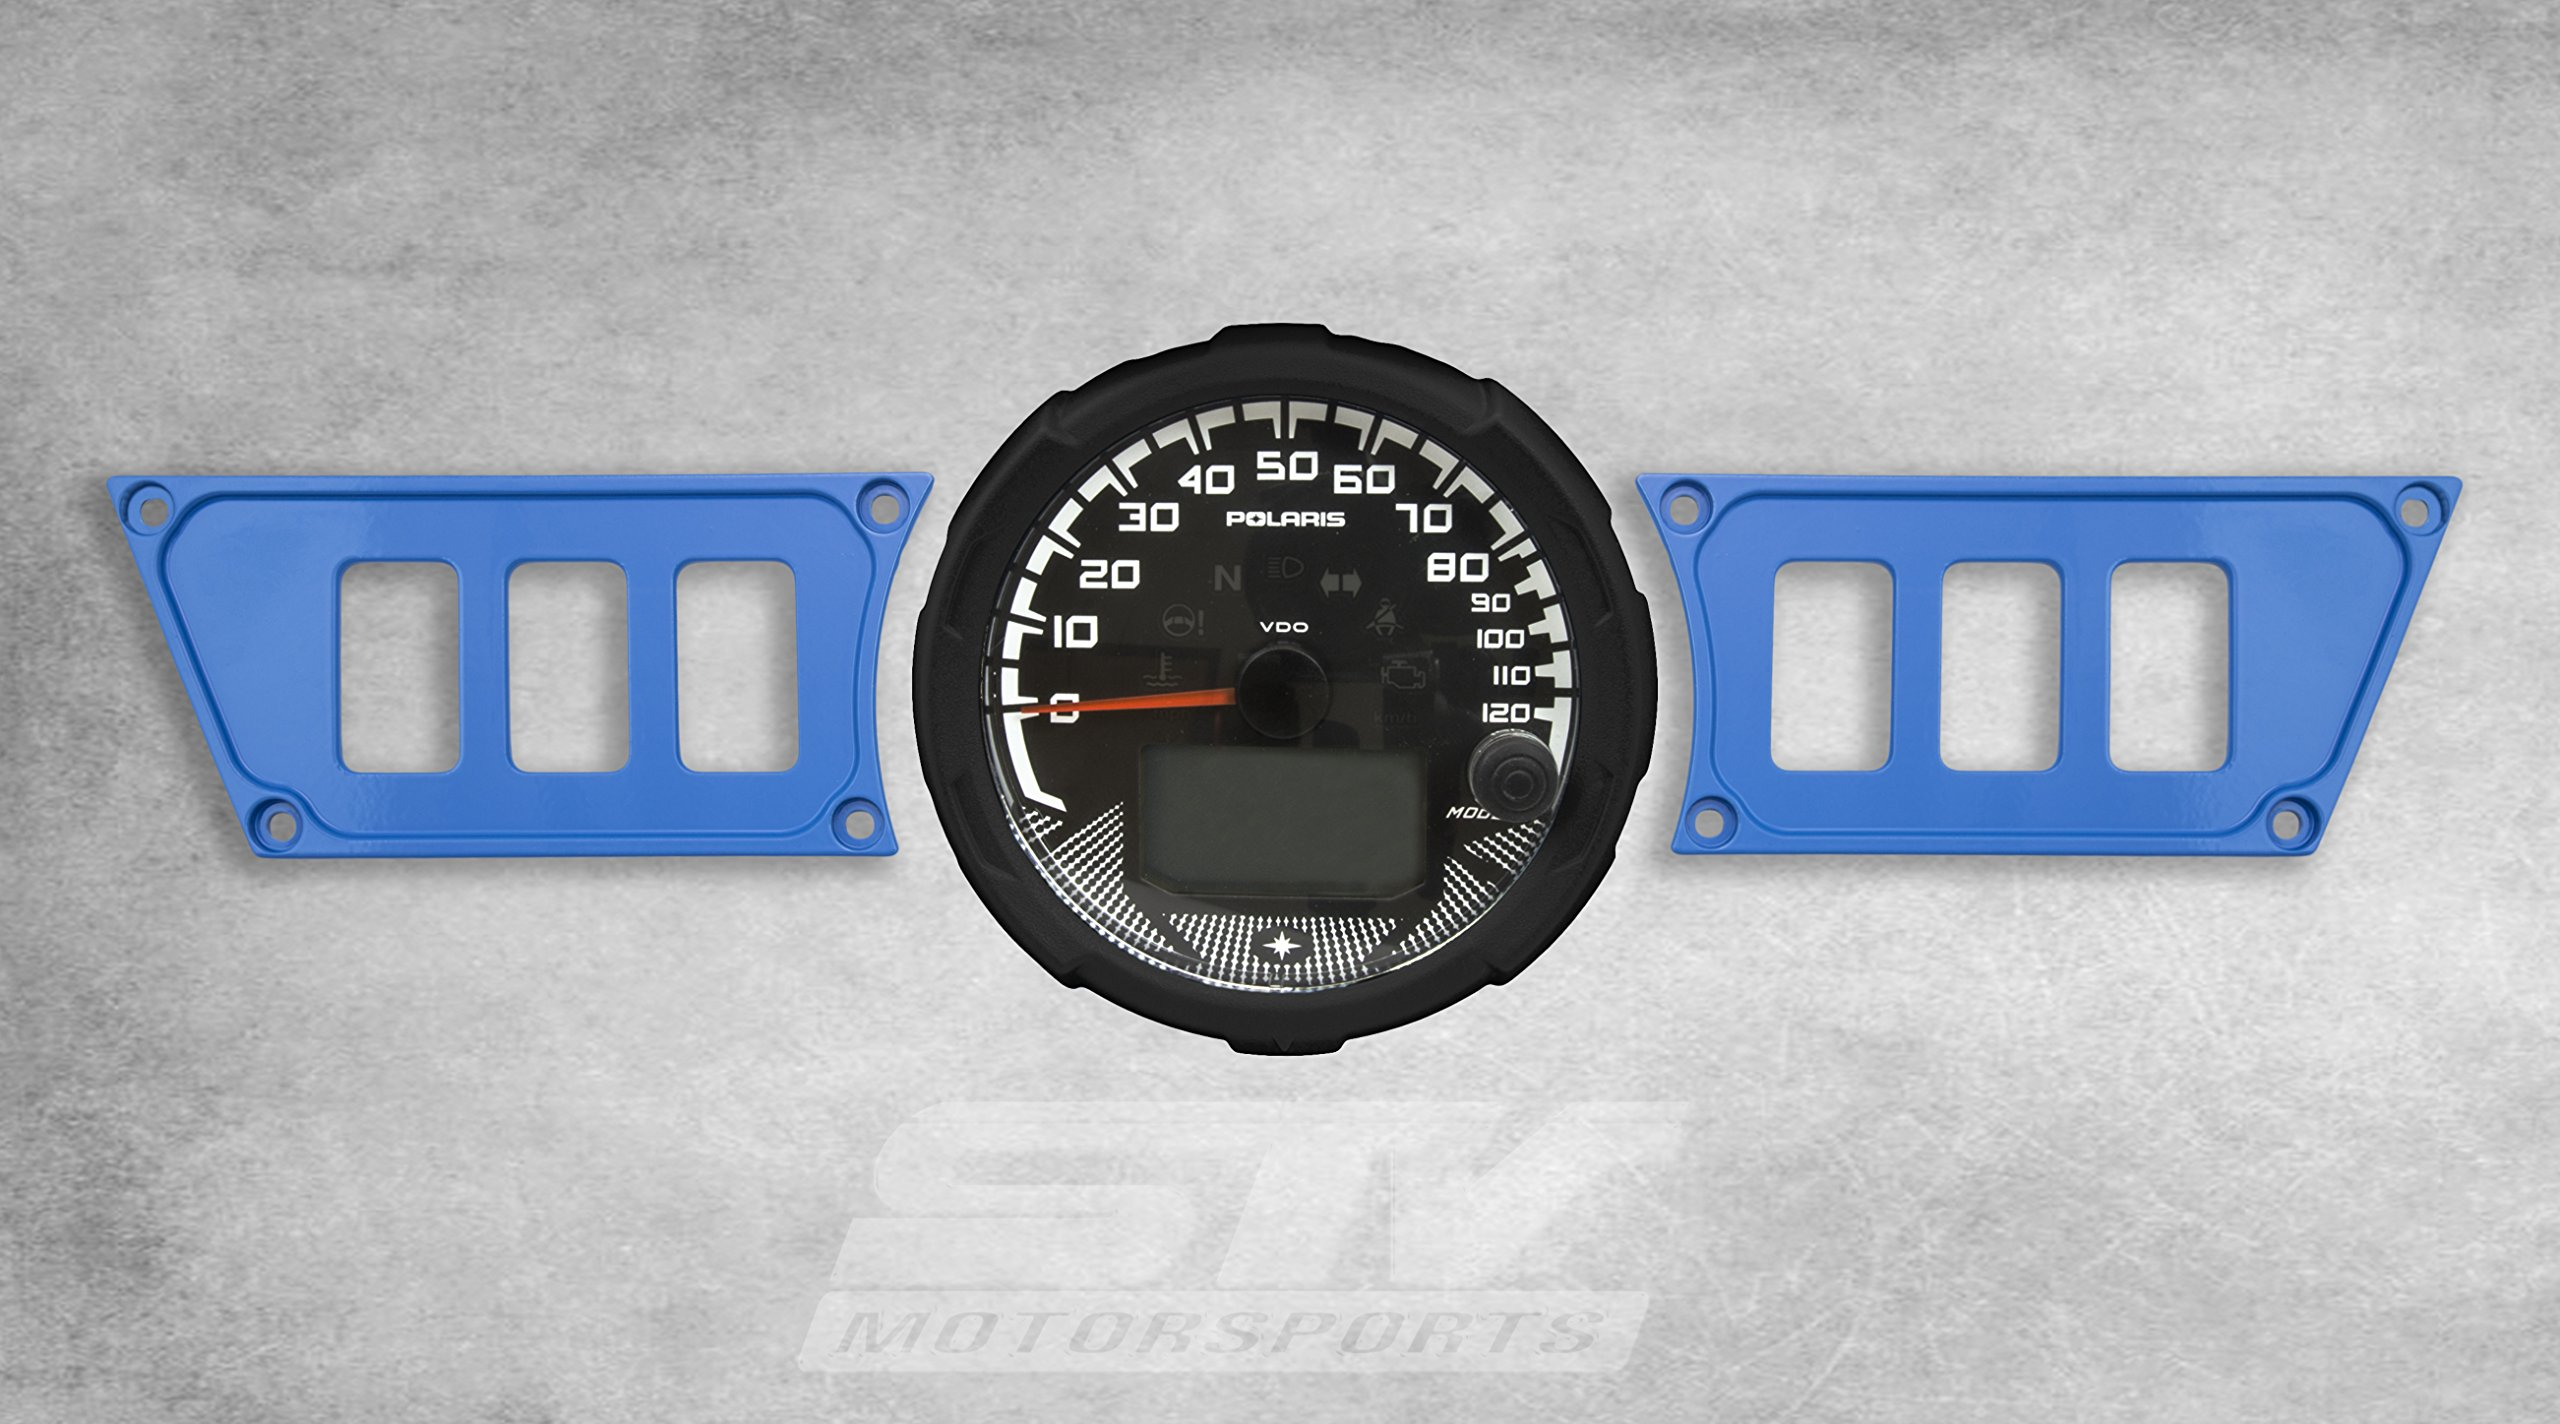 STV Motorsports Custom Aluminum Blue Dash Panel for 2015-2018 Polaris RZR XP 900 with 6 Switch Openings (no switches included)